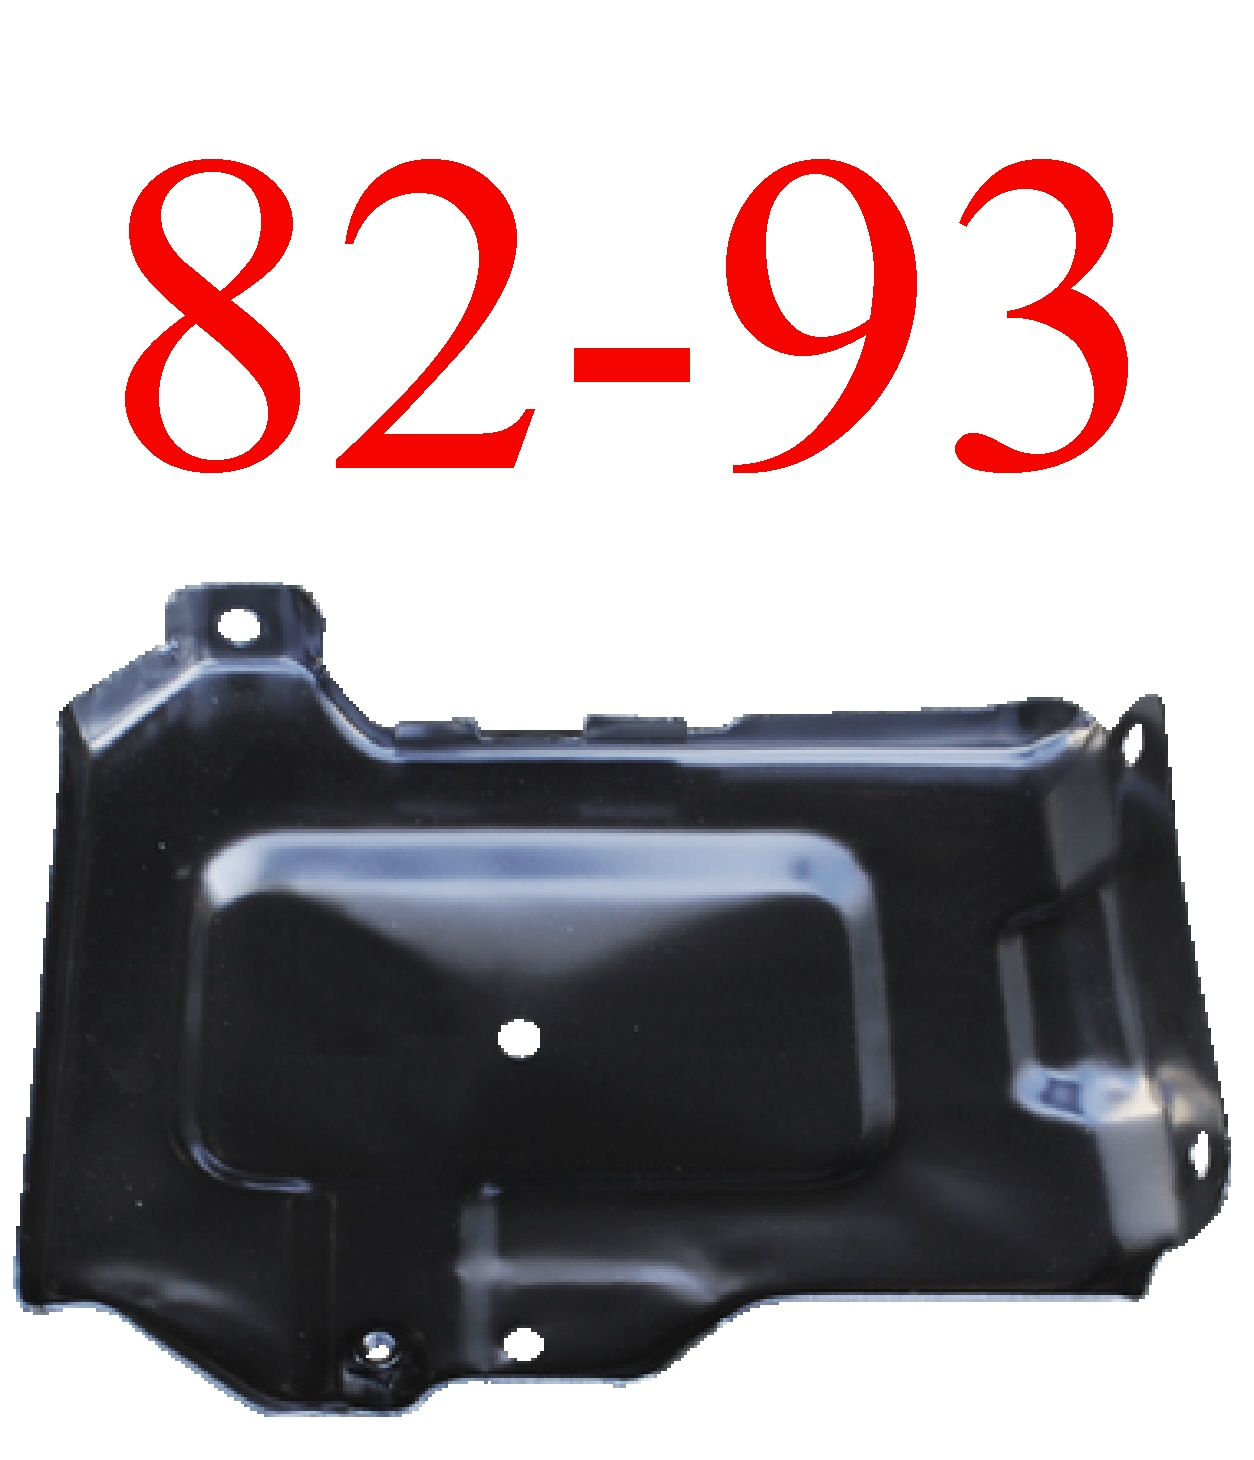 82-93 Chevy S10 Battery Tray